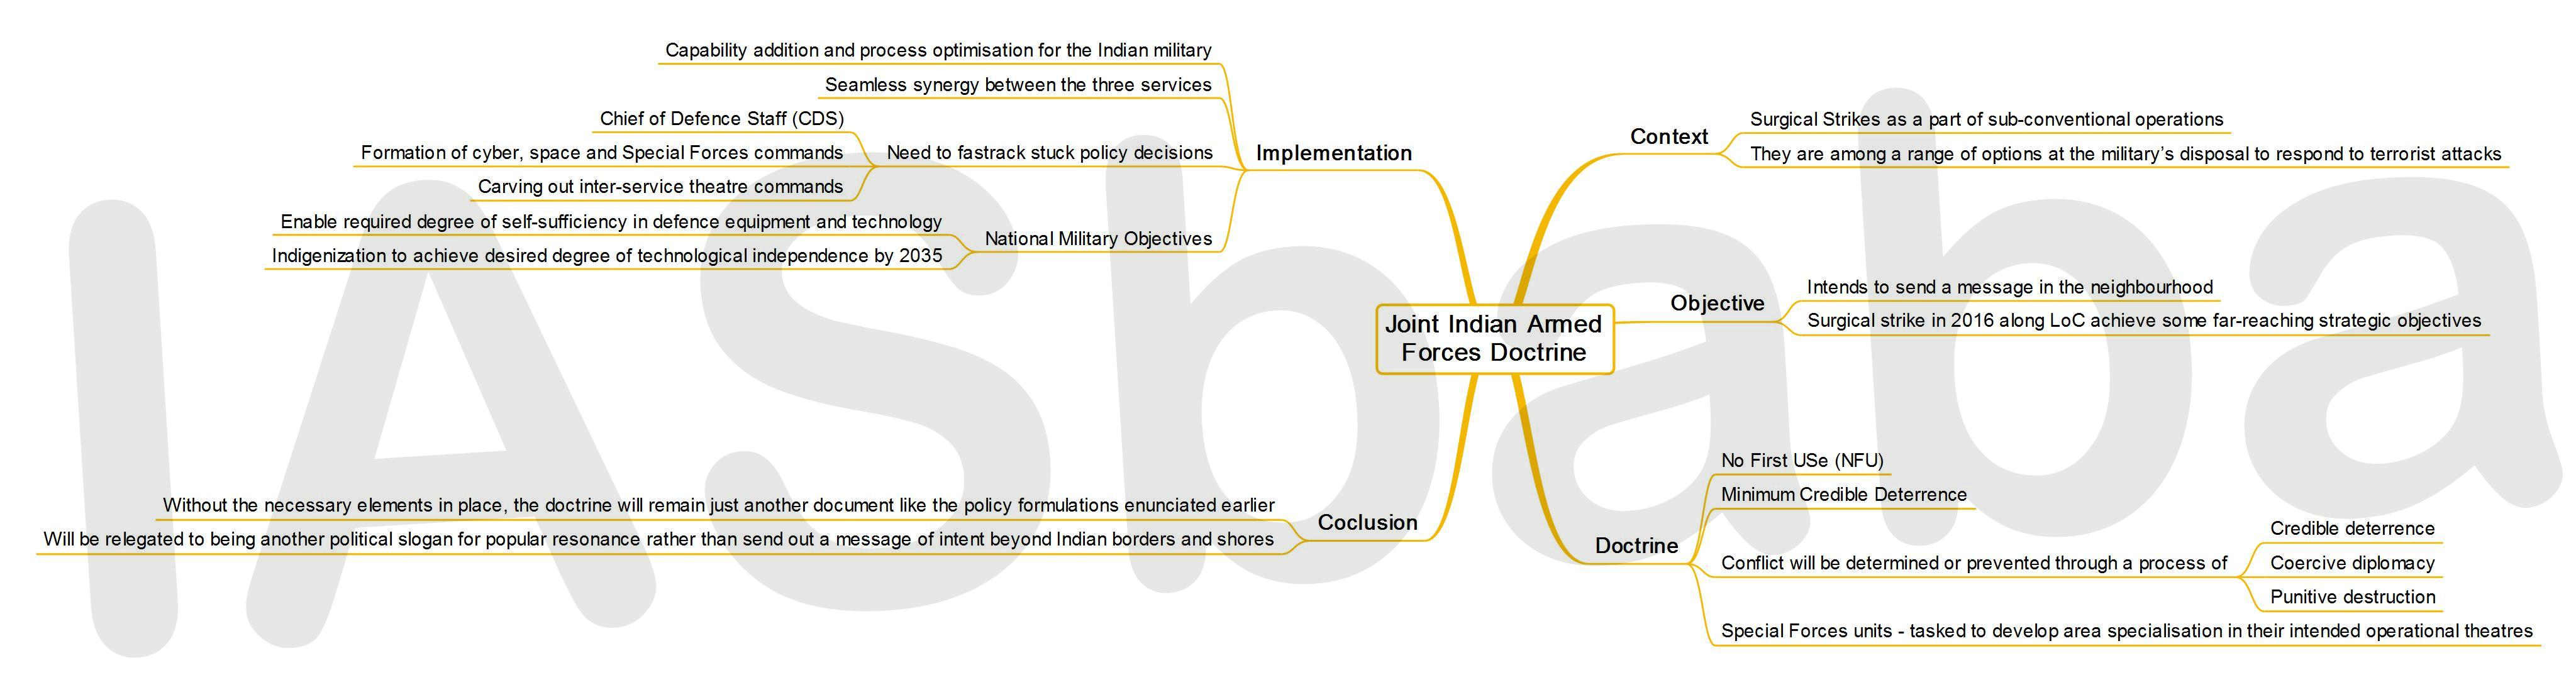 IASbaba's MINDMAP : Issue - Joint Indian Armed Forces Doctrine